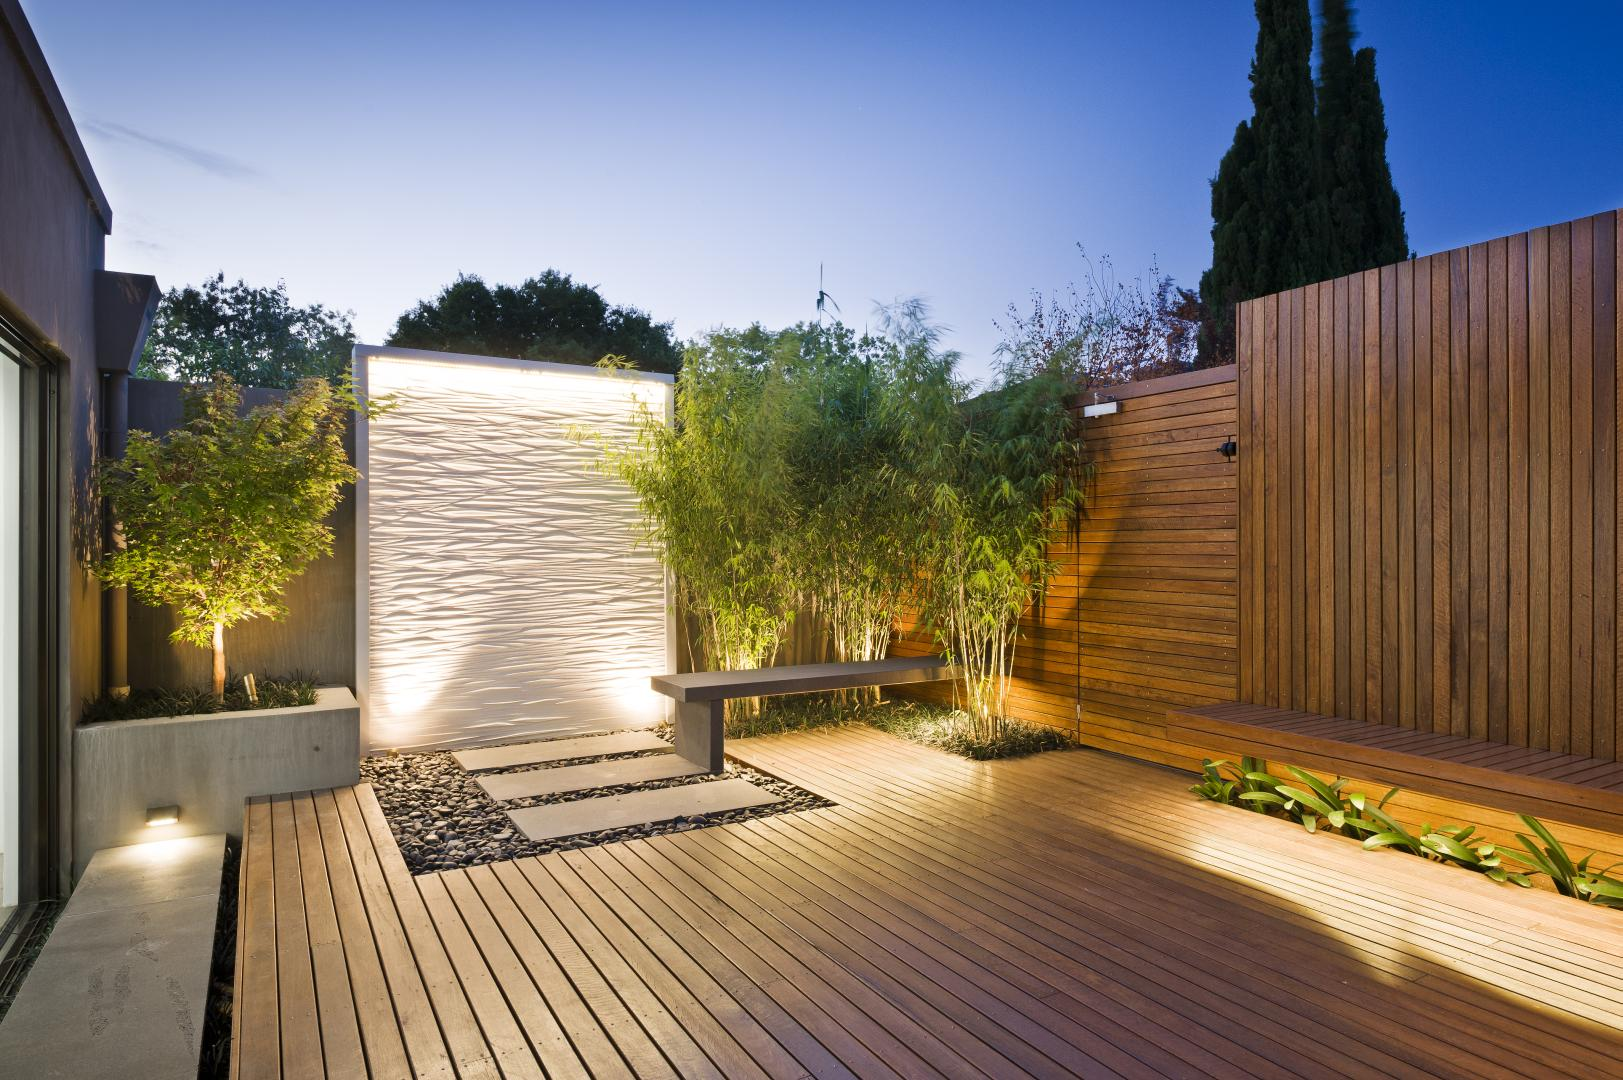 & Deck Lighting Ideas That Bring Out The Beauty Of The Space